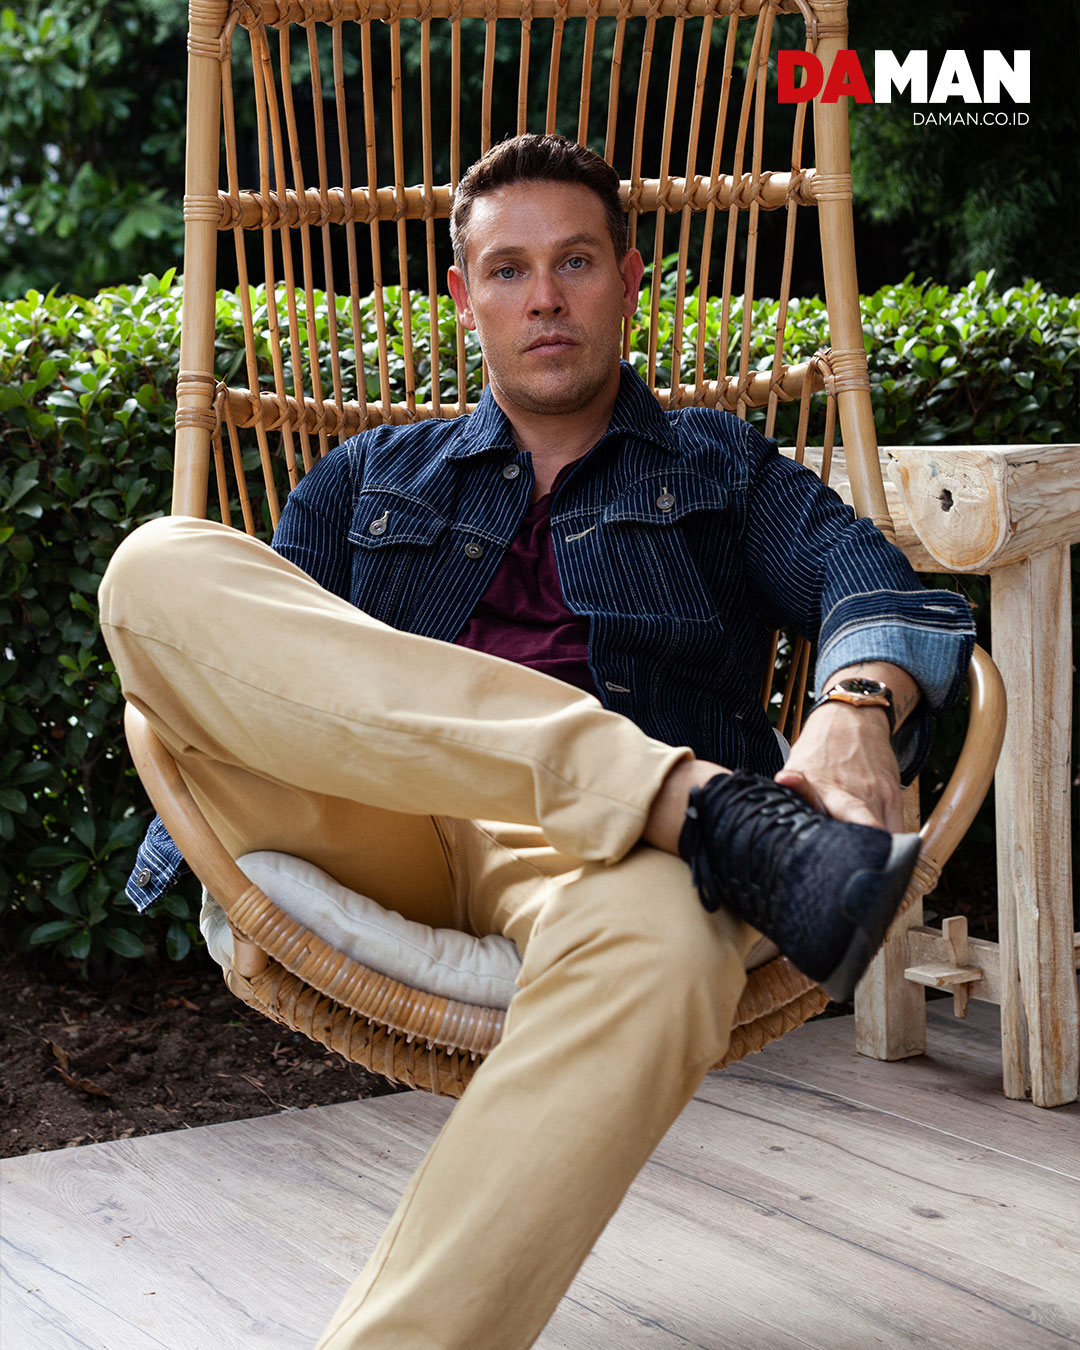 Jacket by AG Jeans; t-shirt by Zadig & Voltaire; pants by Rupert & Buckley; watch by Rolex 'Cellini'; shoes by Nike